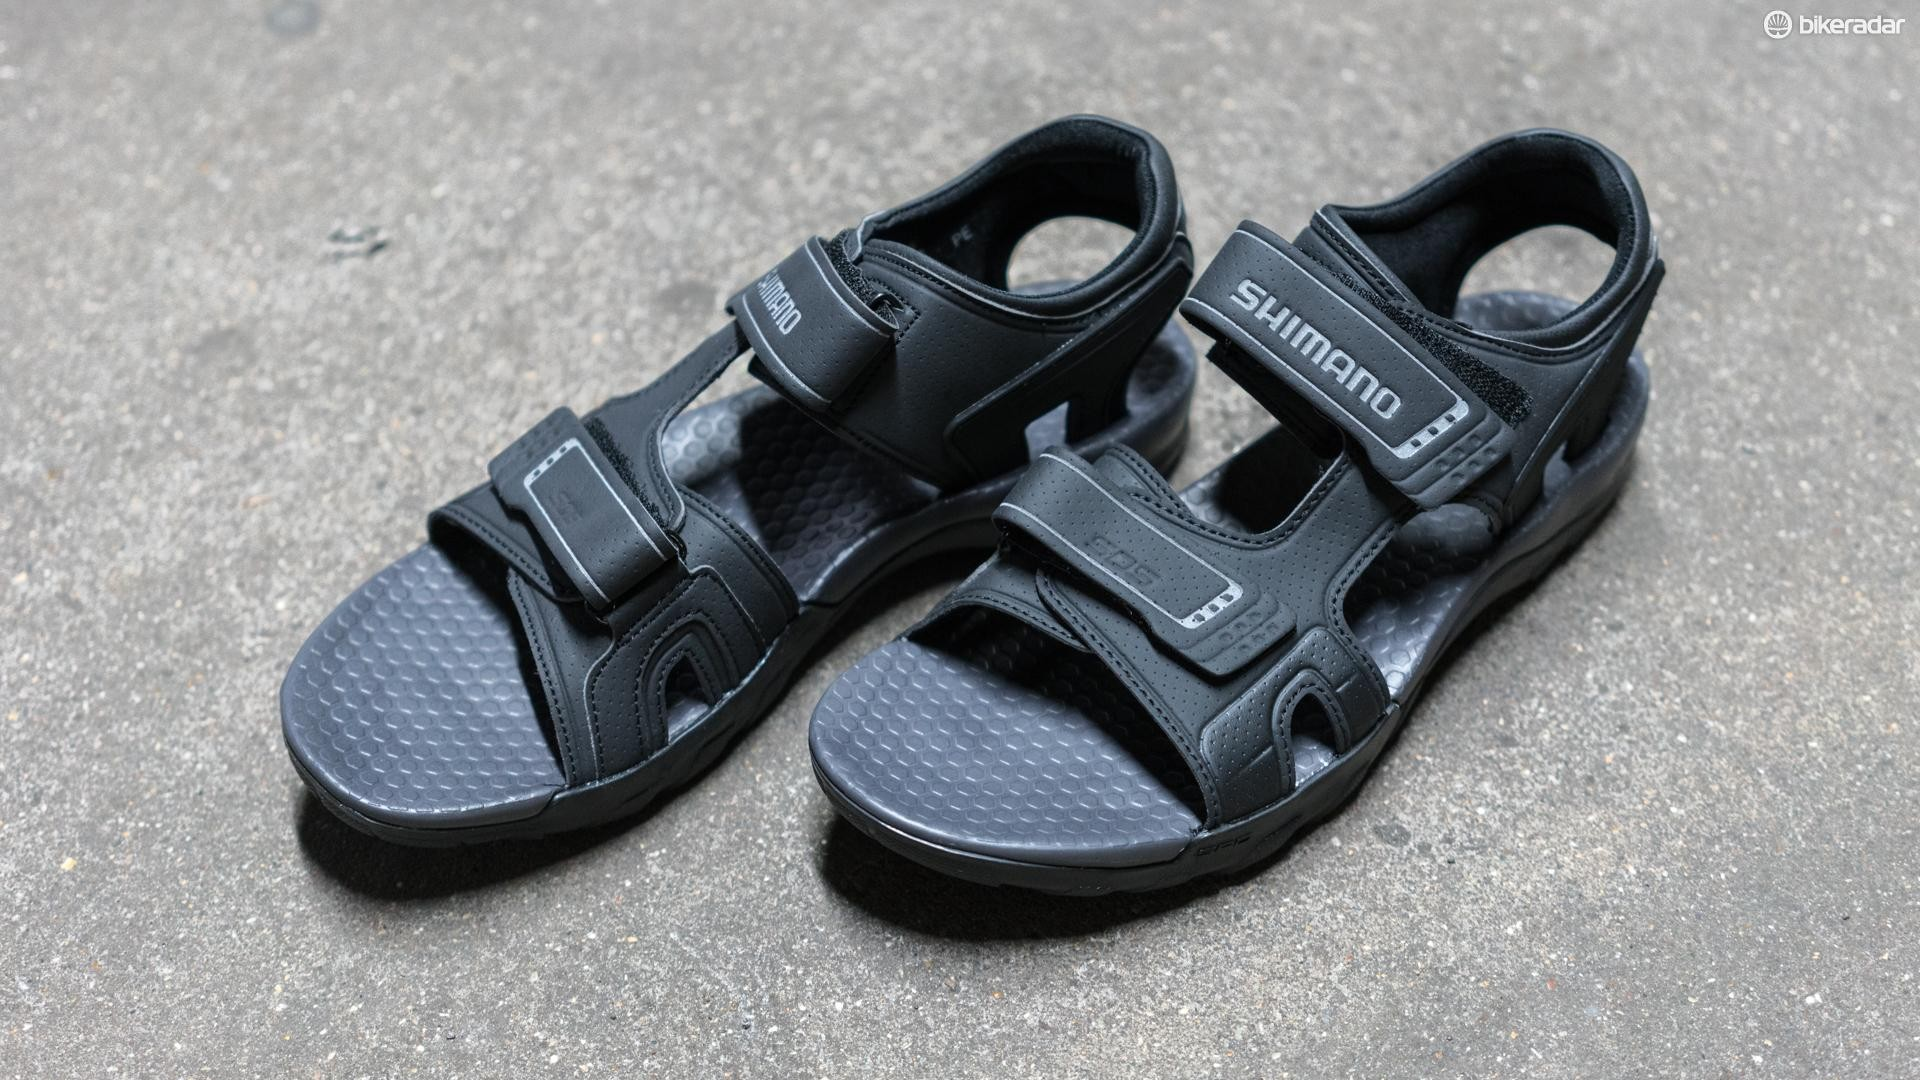 The rare and elusive Shimano SPD sandals